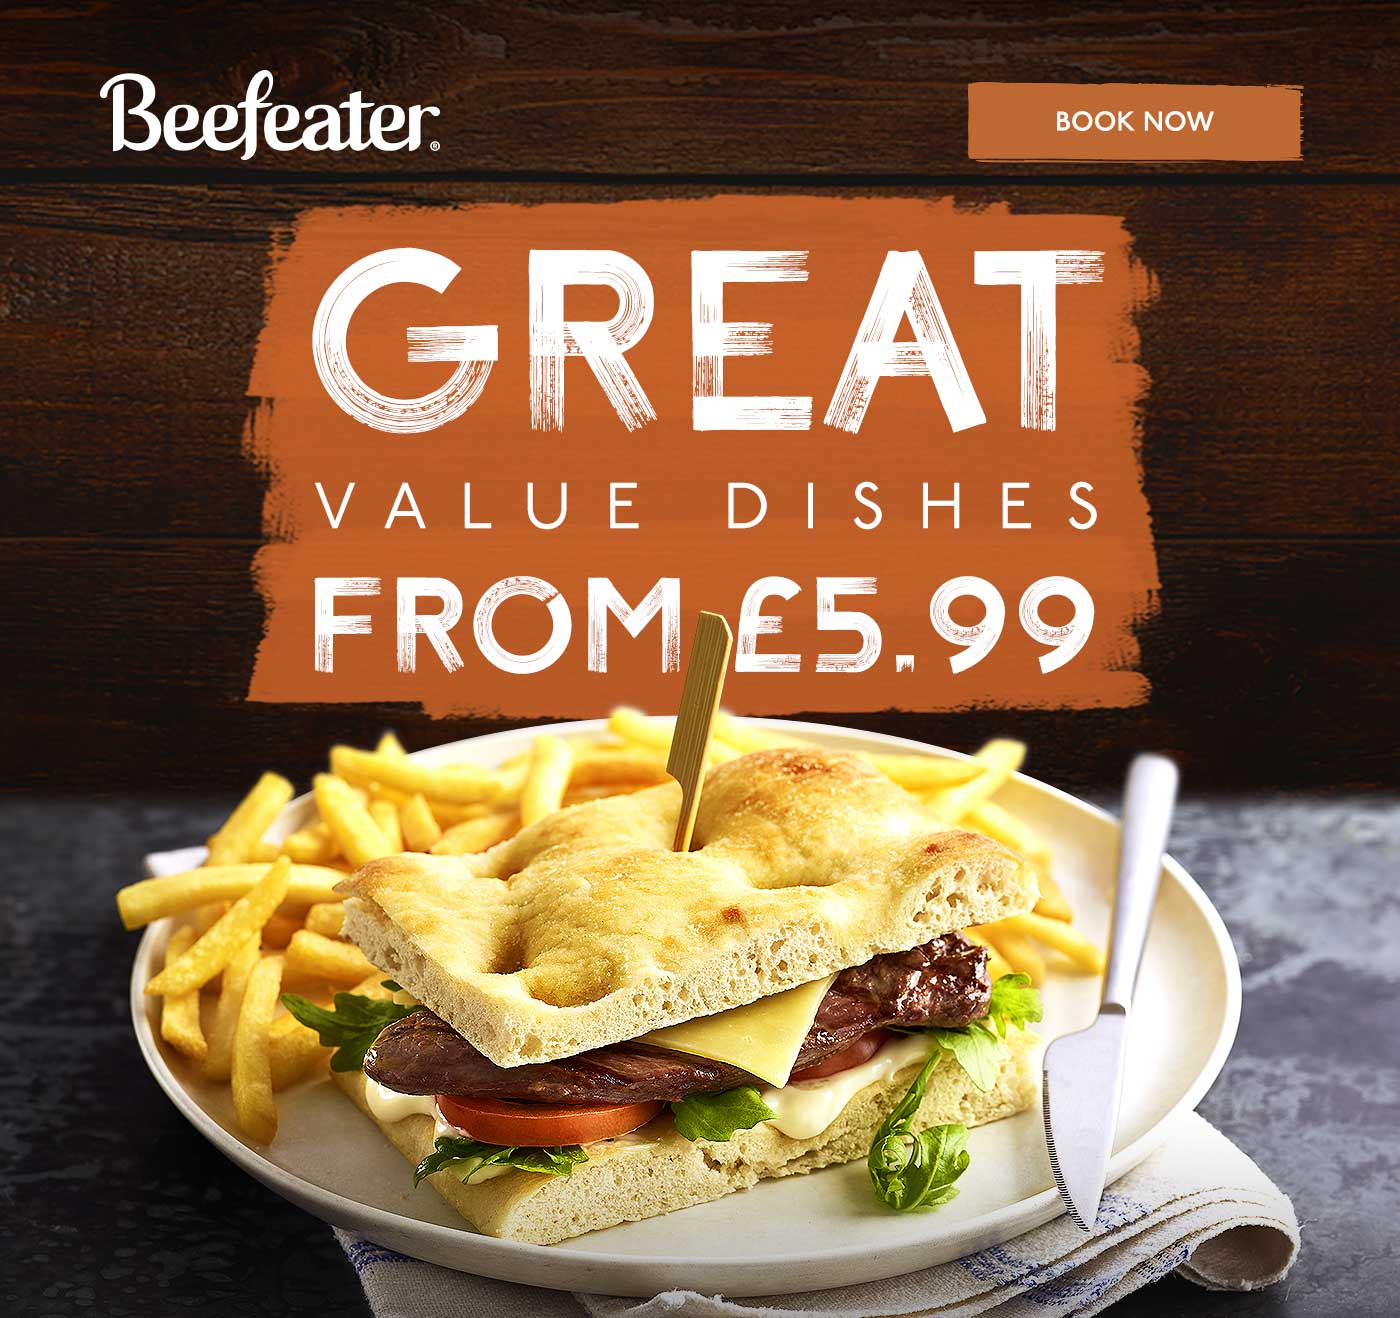 GREAT VALUE DISHES FROM £5.99